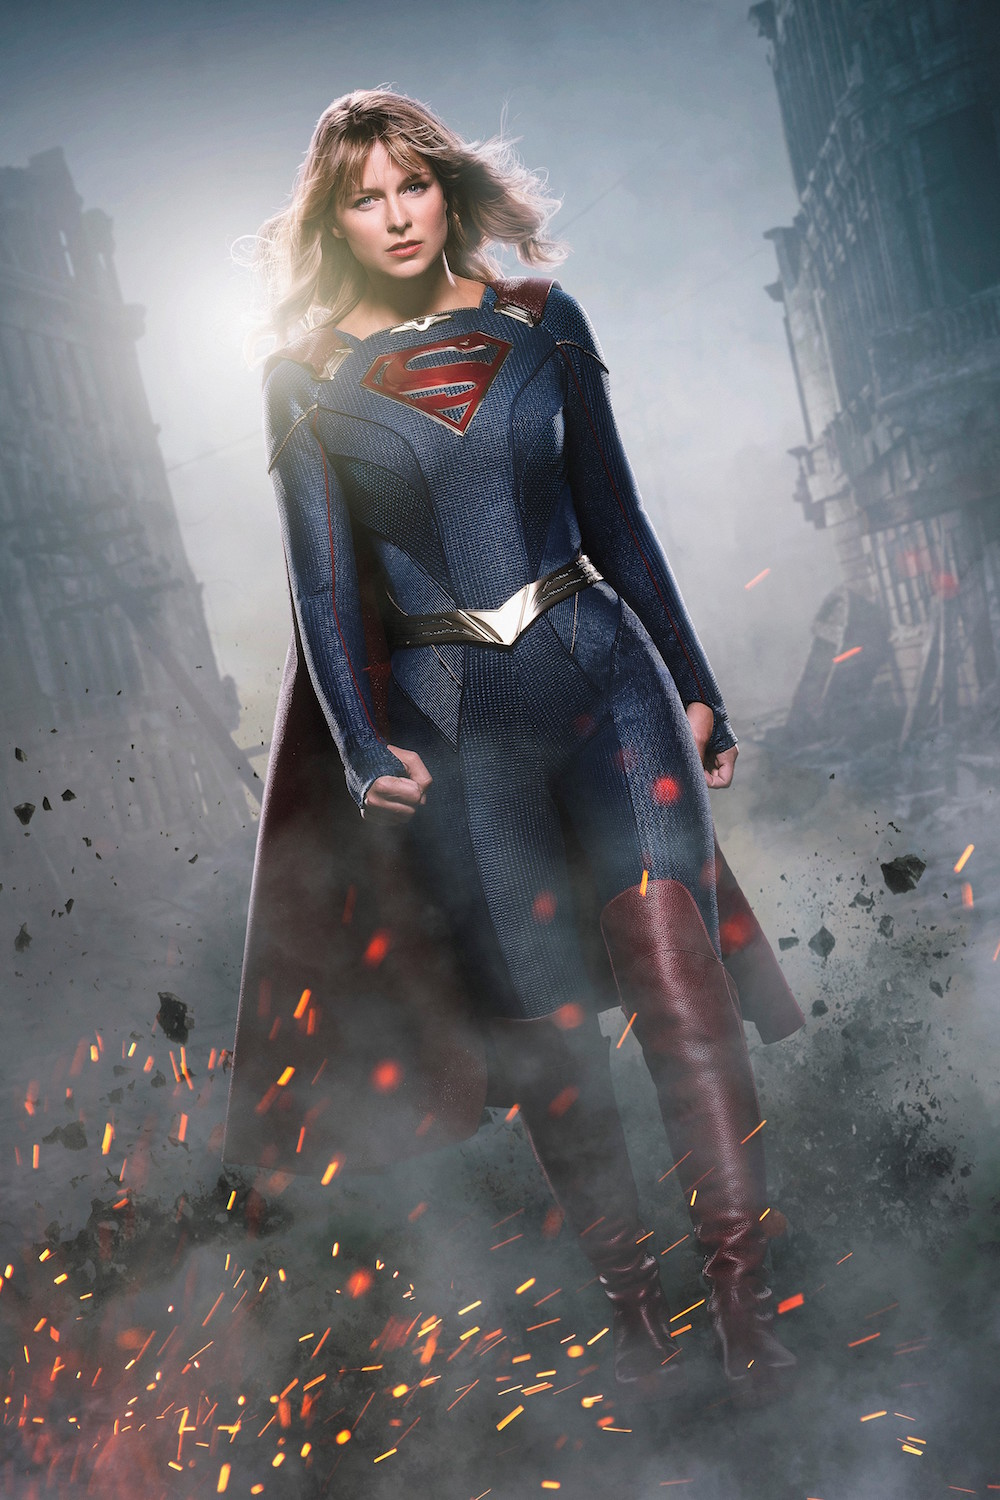 Supergirl - Season 5 Episode 13 - It's a Super Life